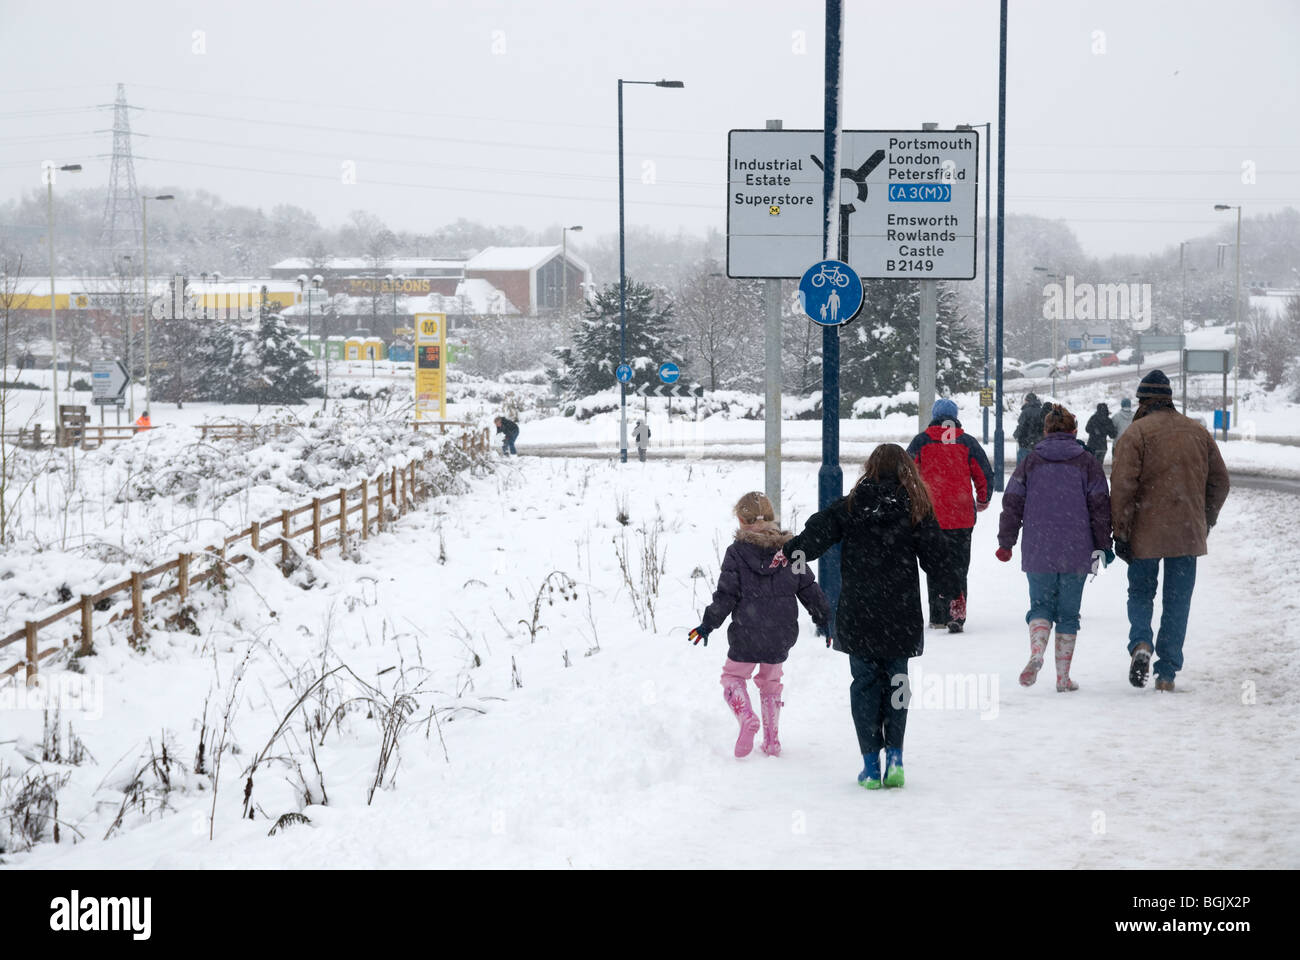 Familys walking to morrison supermarket for food during transport chaos caused by Major snow fall A3 area of hampshire - Stock Image